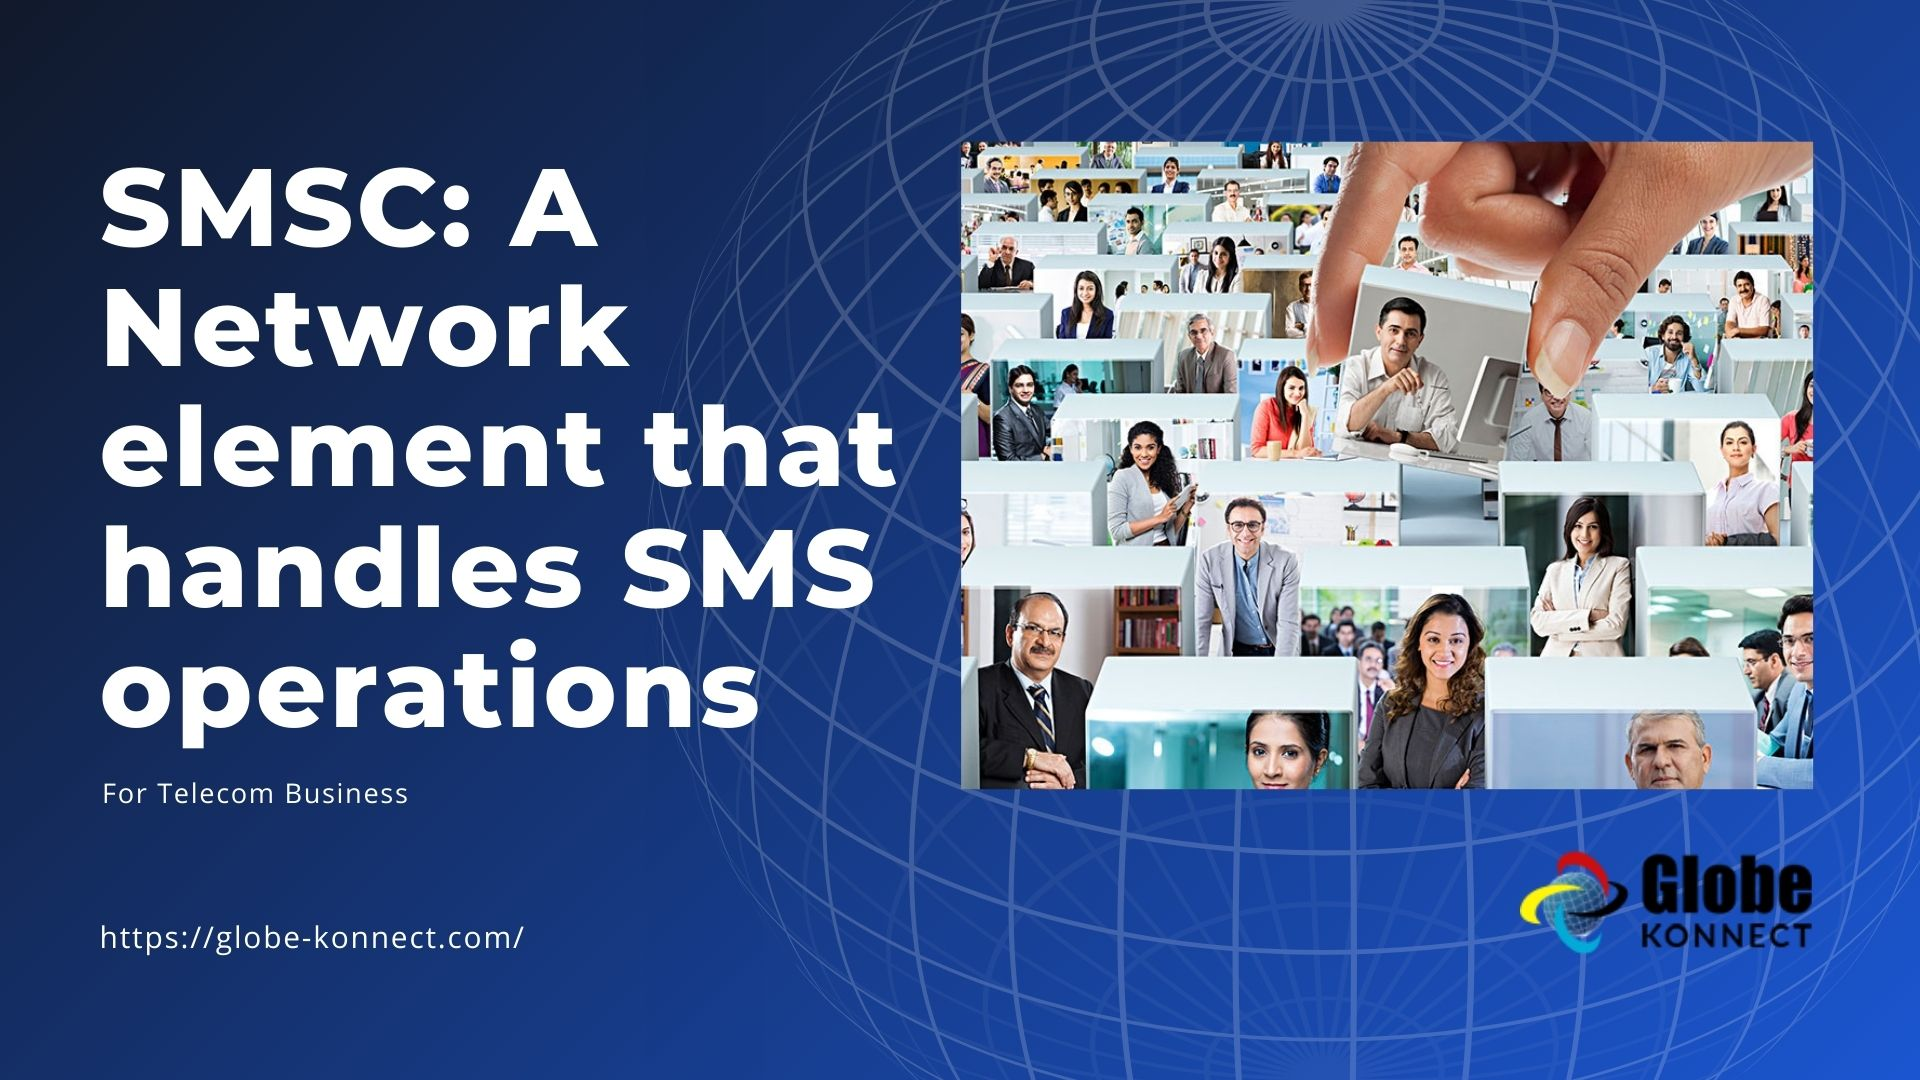 SMSC A Network element that handles SMS operations